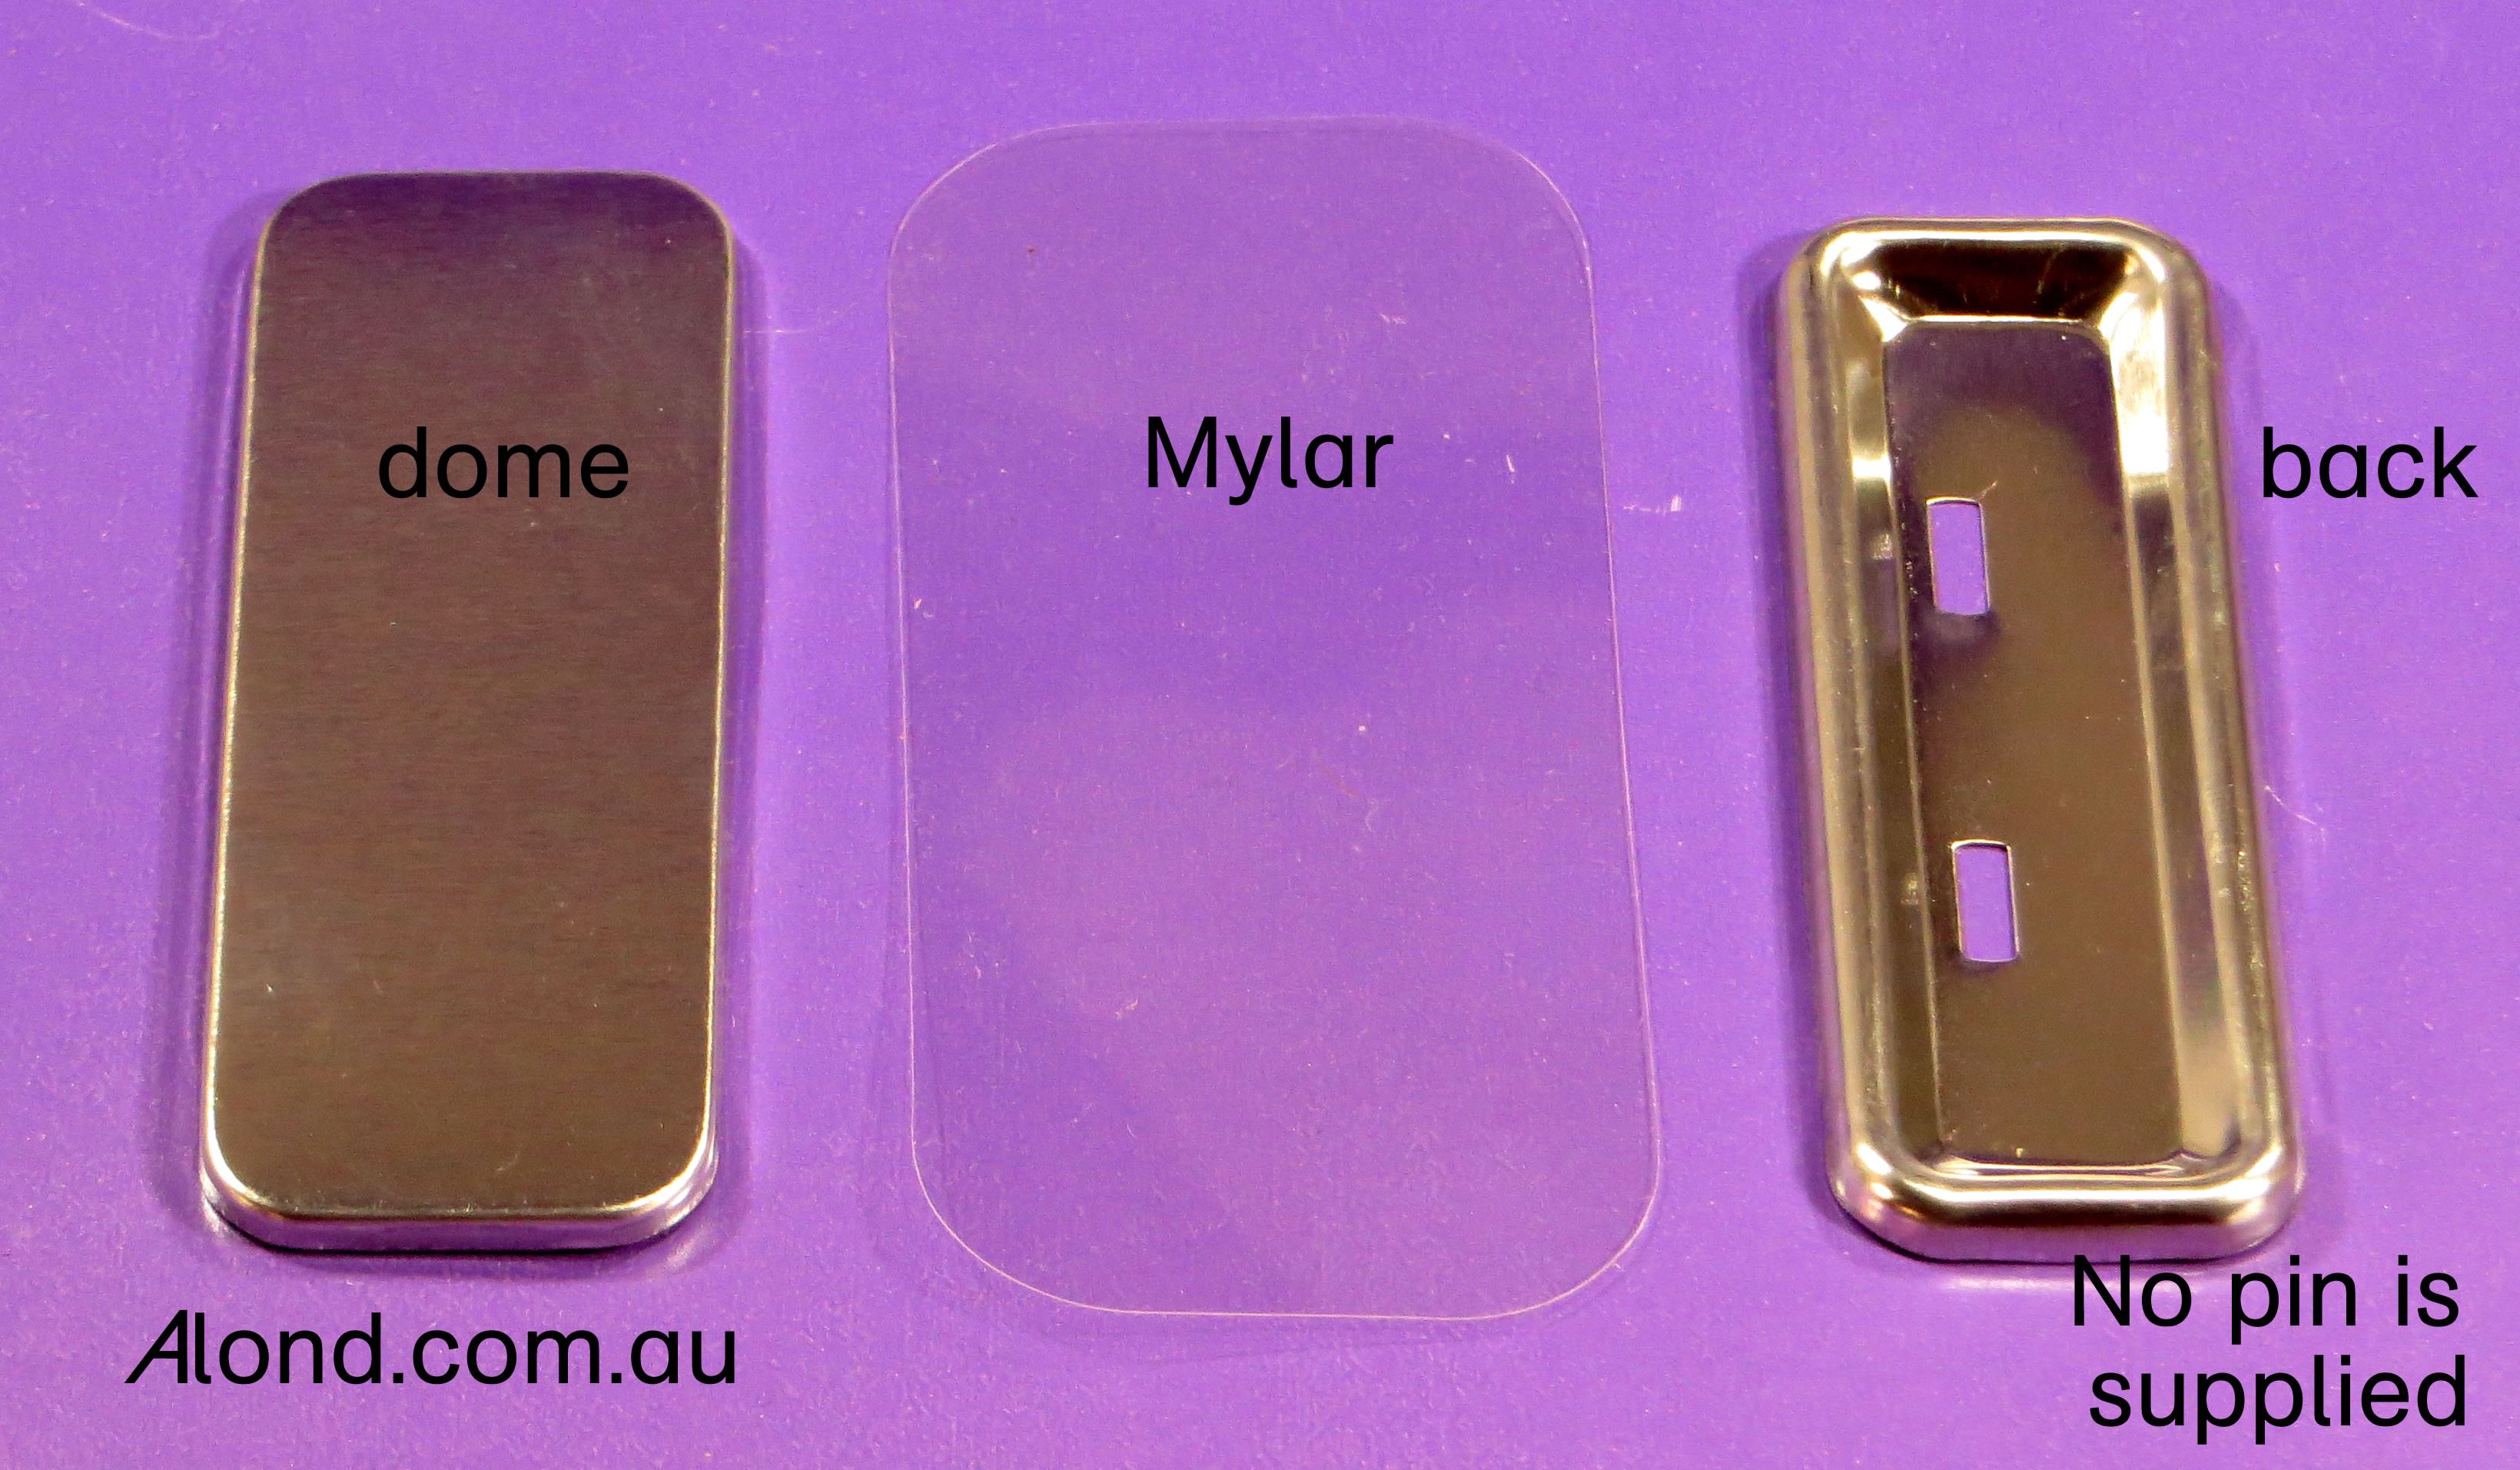 special name badge supplied WITHOUT a pin, add your own glue-on pin if you wish!